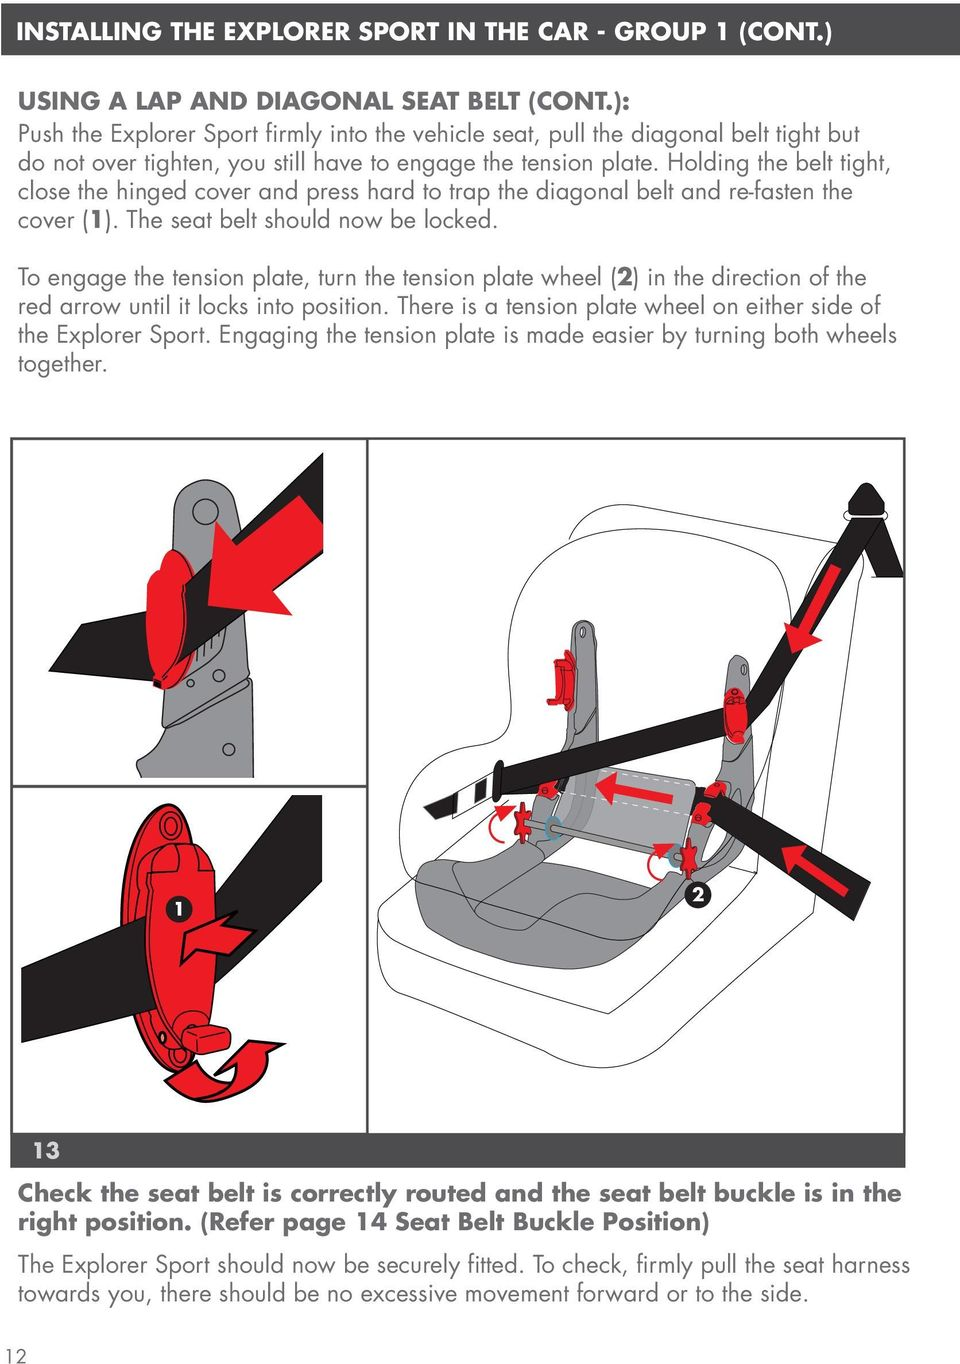 Holding the belt tight, close the hinged cover and press hard to trap the diagonal belt and re-fasten the cover (1). The seat belt should now be locked.